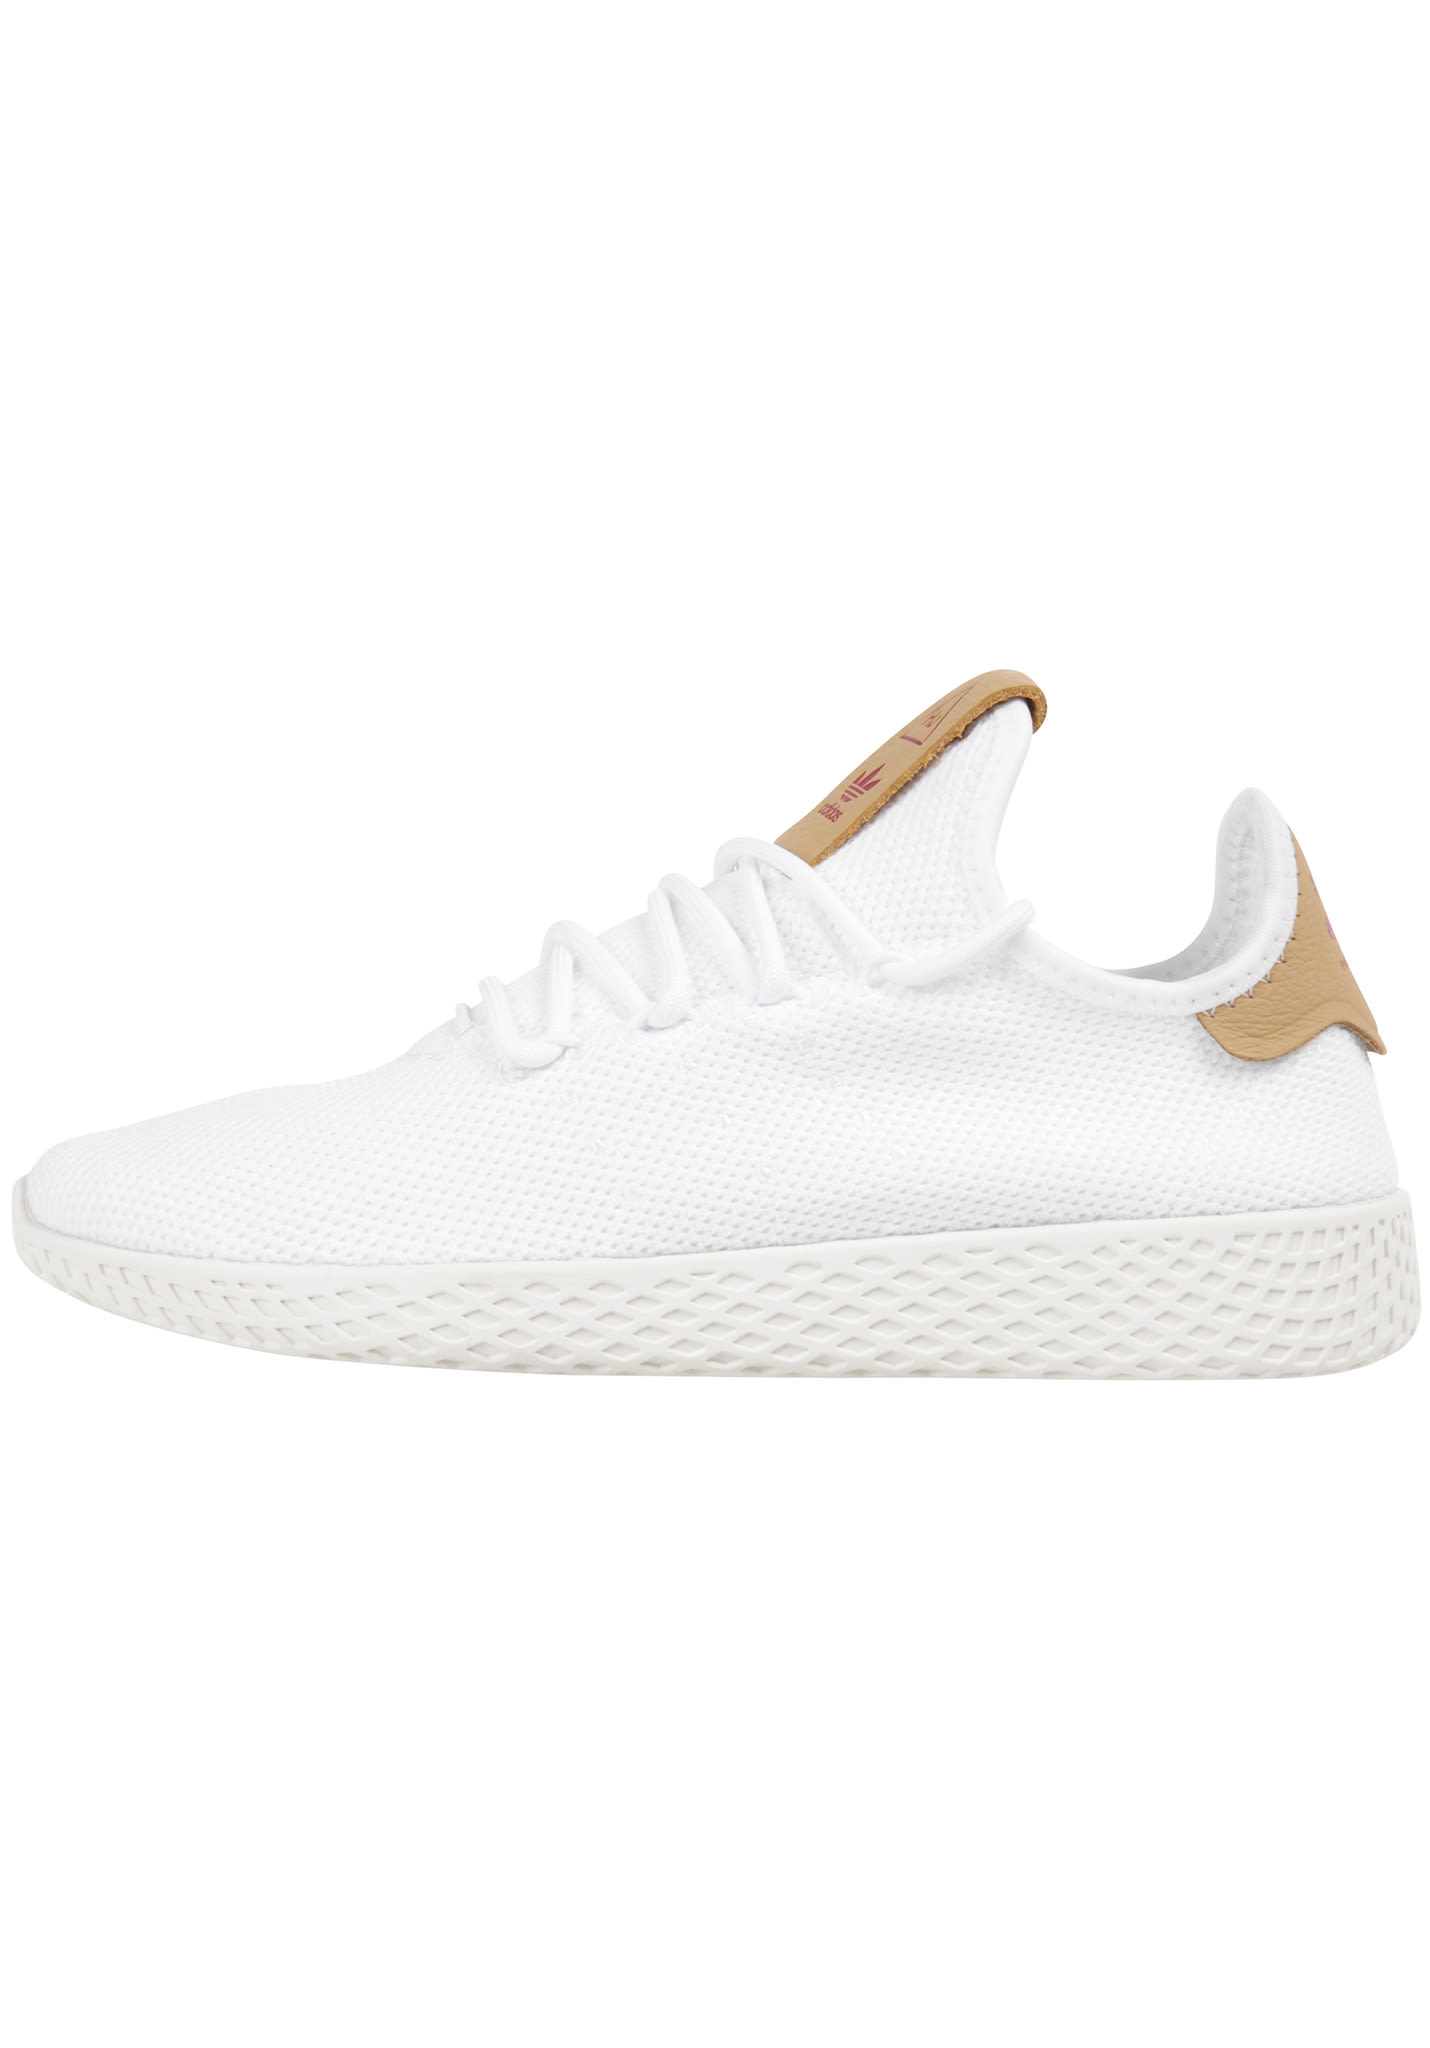 Williams Tennis Pharrell Weiß Adidas Hu Originals Damen Für Sneaker OPkZXTui